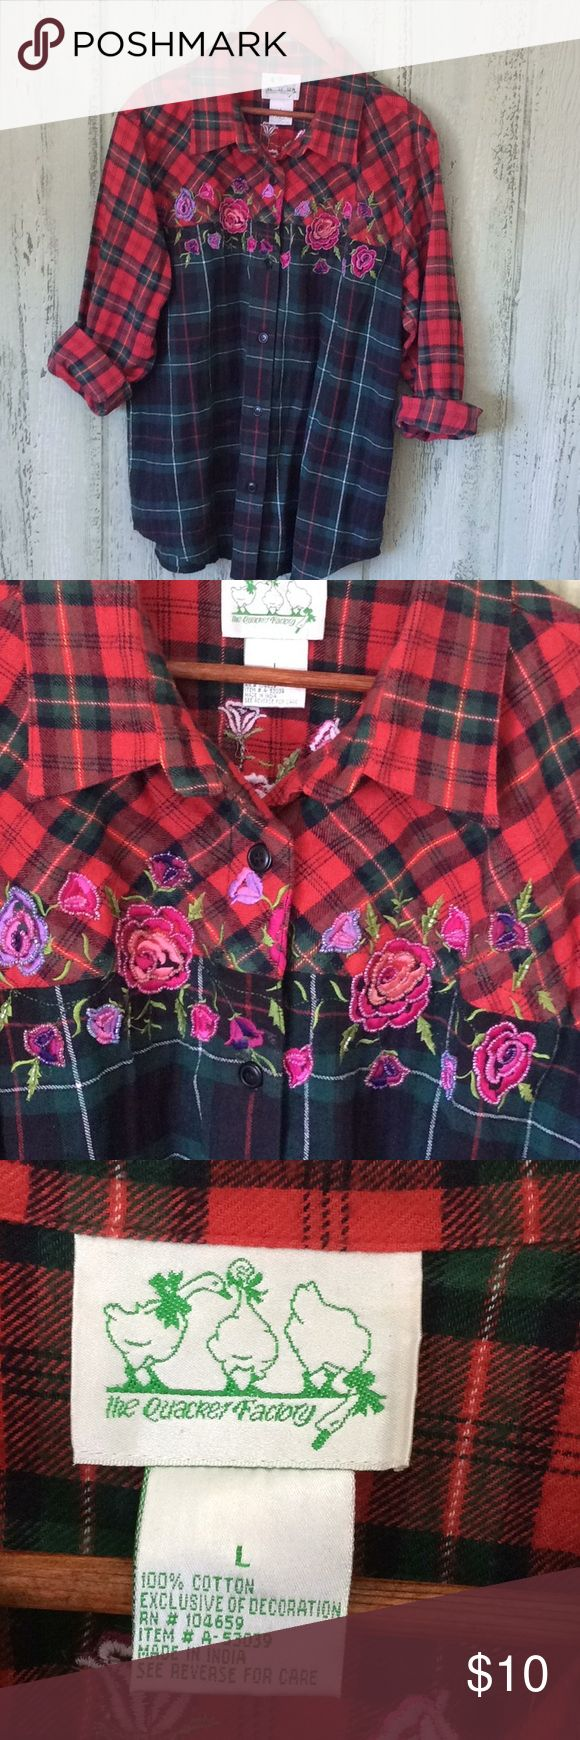 """Beaded flannel shirt the Quaker Factory L Nice weight flannel beaded shirt large. Some beading in places difficult to see. Great with jeans!  Underarm to underarm 23"""" Sleeve from shoulder seam 24"""" Length 29"""" The Quaker Factory Tops Button Down Shirts"""